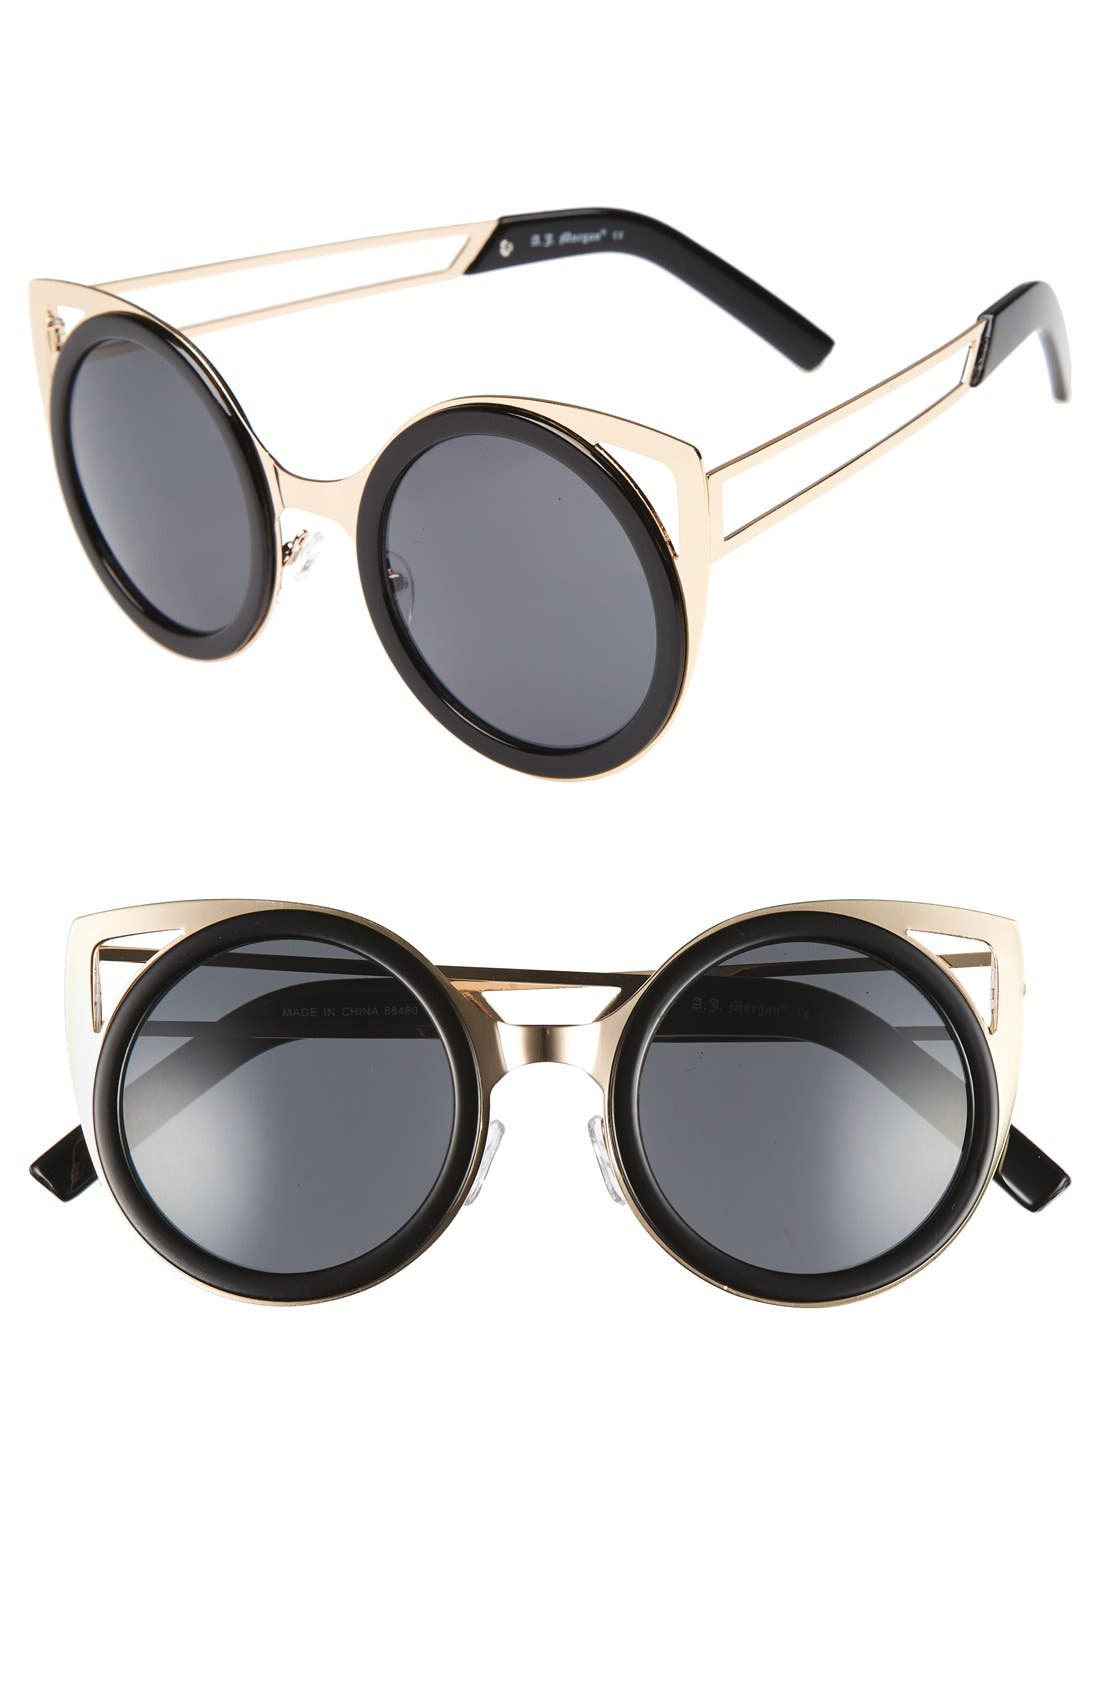 Alternate Image 1 Selected - A.J. Morgan 'Cheshire' 50mm Round Sunglasses